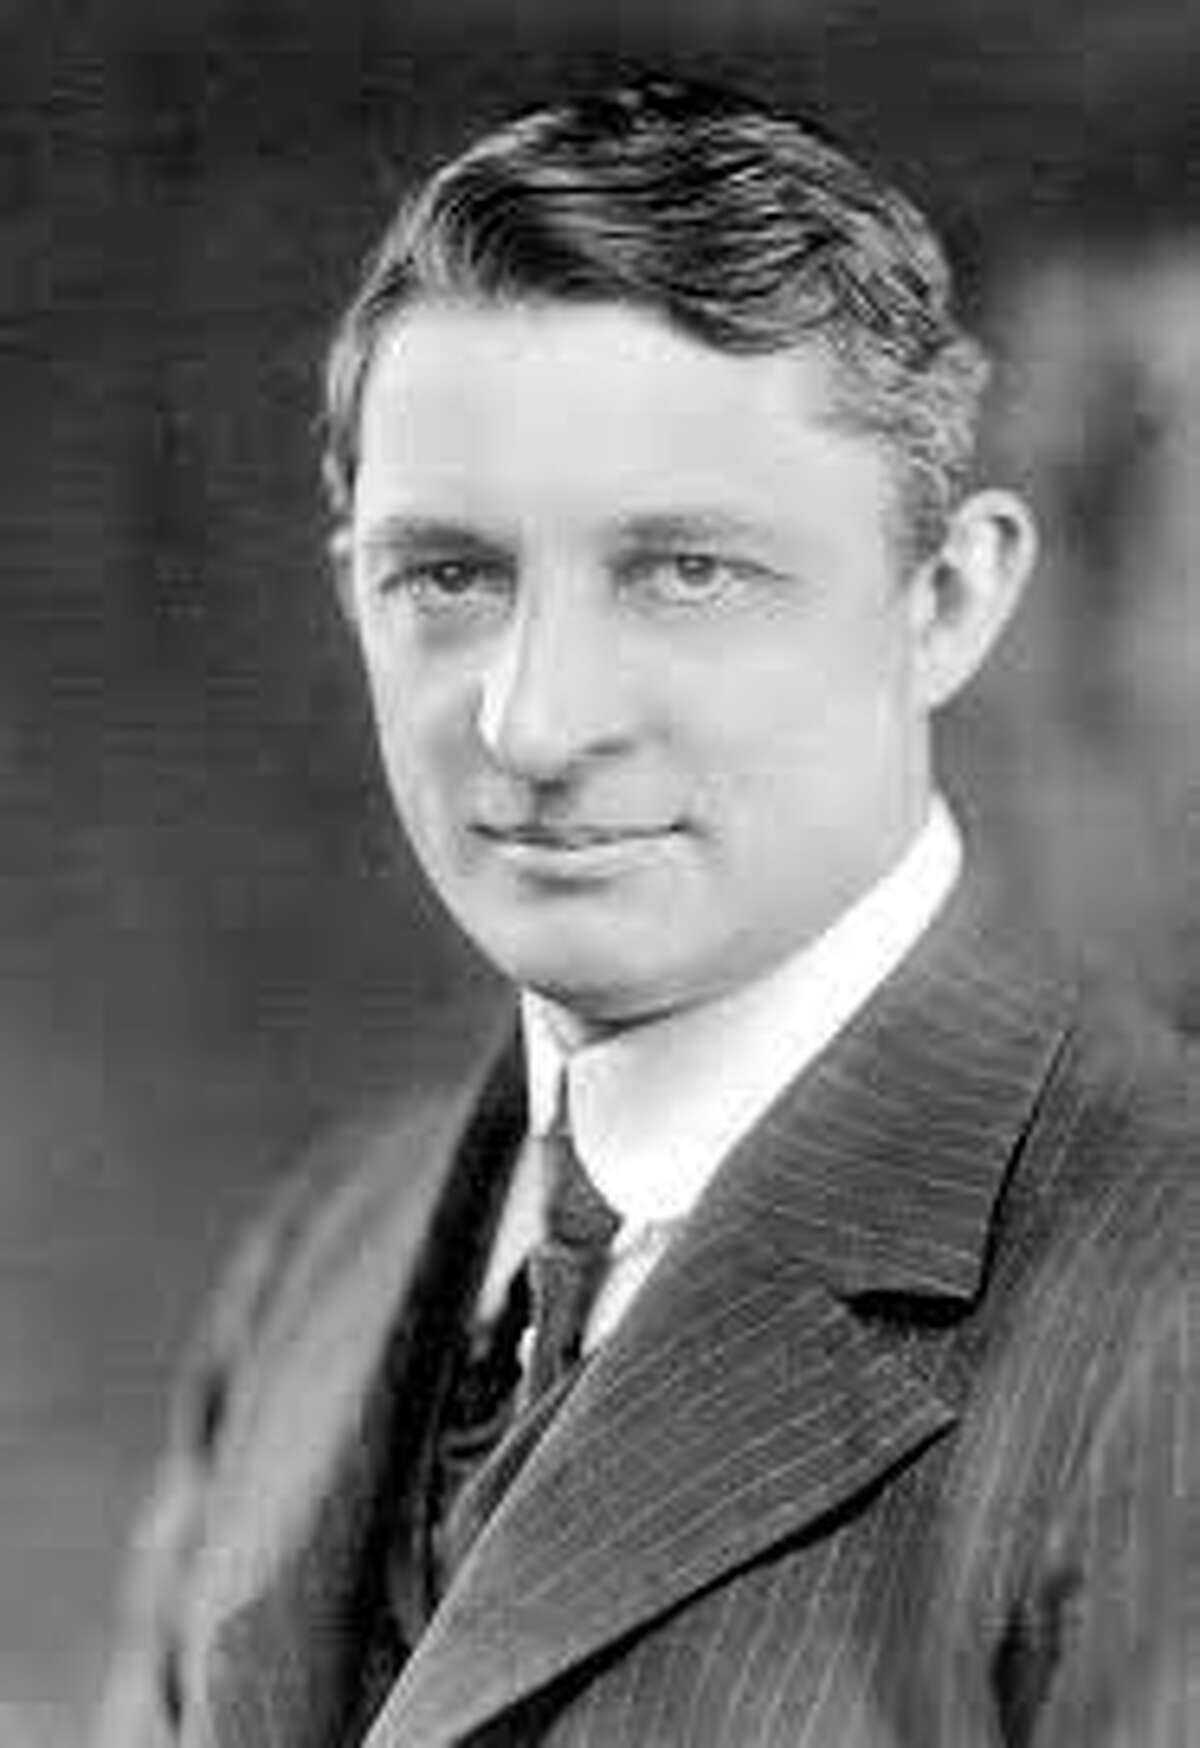 Willis Carrier, inventor of the first modern air conditioner. Photo courtesy of reddit.com